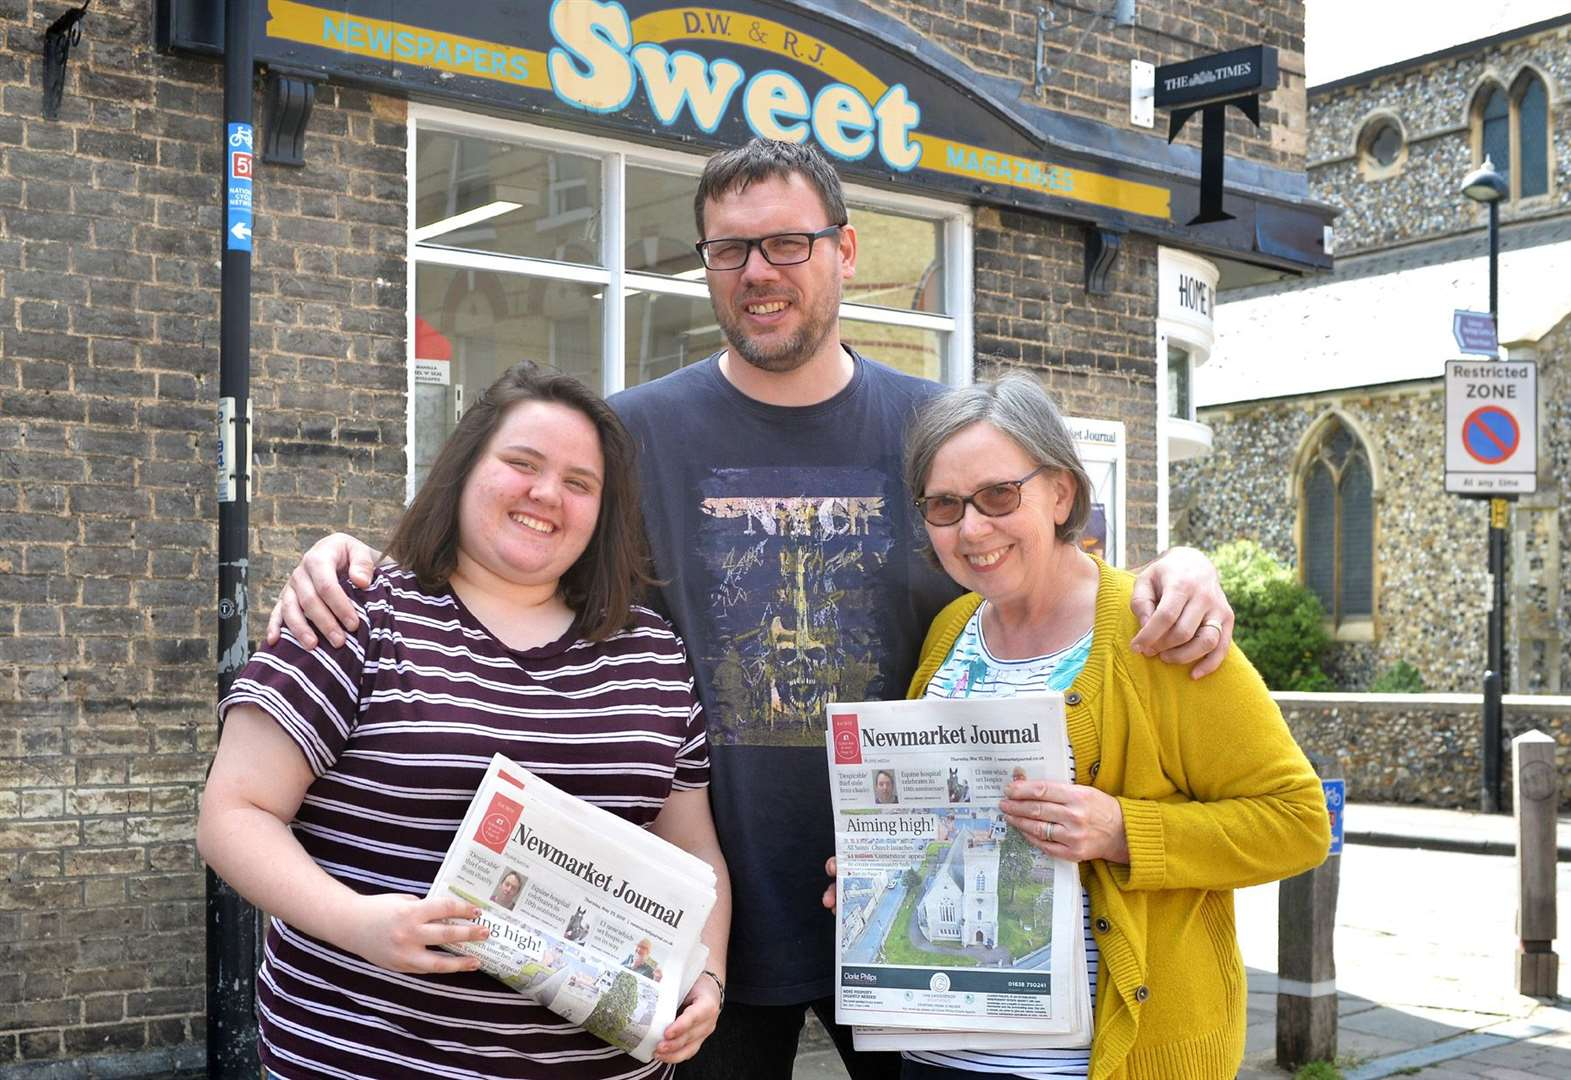 End of an era for town newsagents as shop is sold